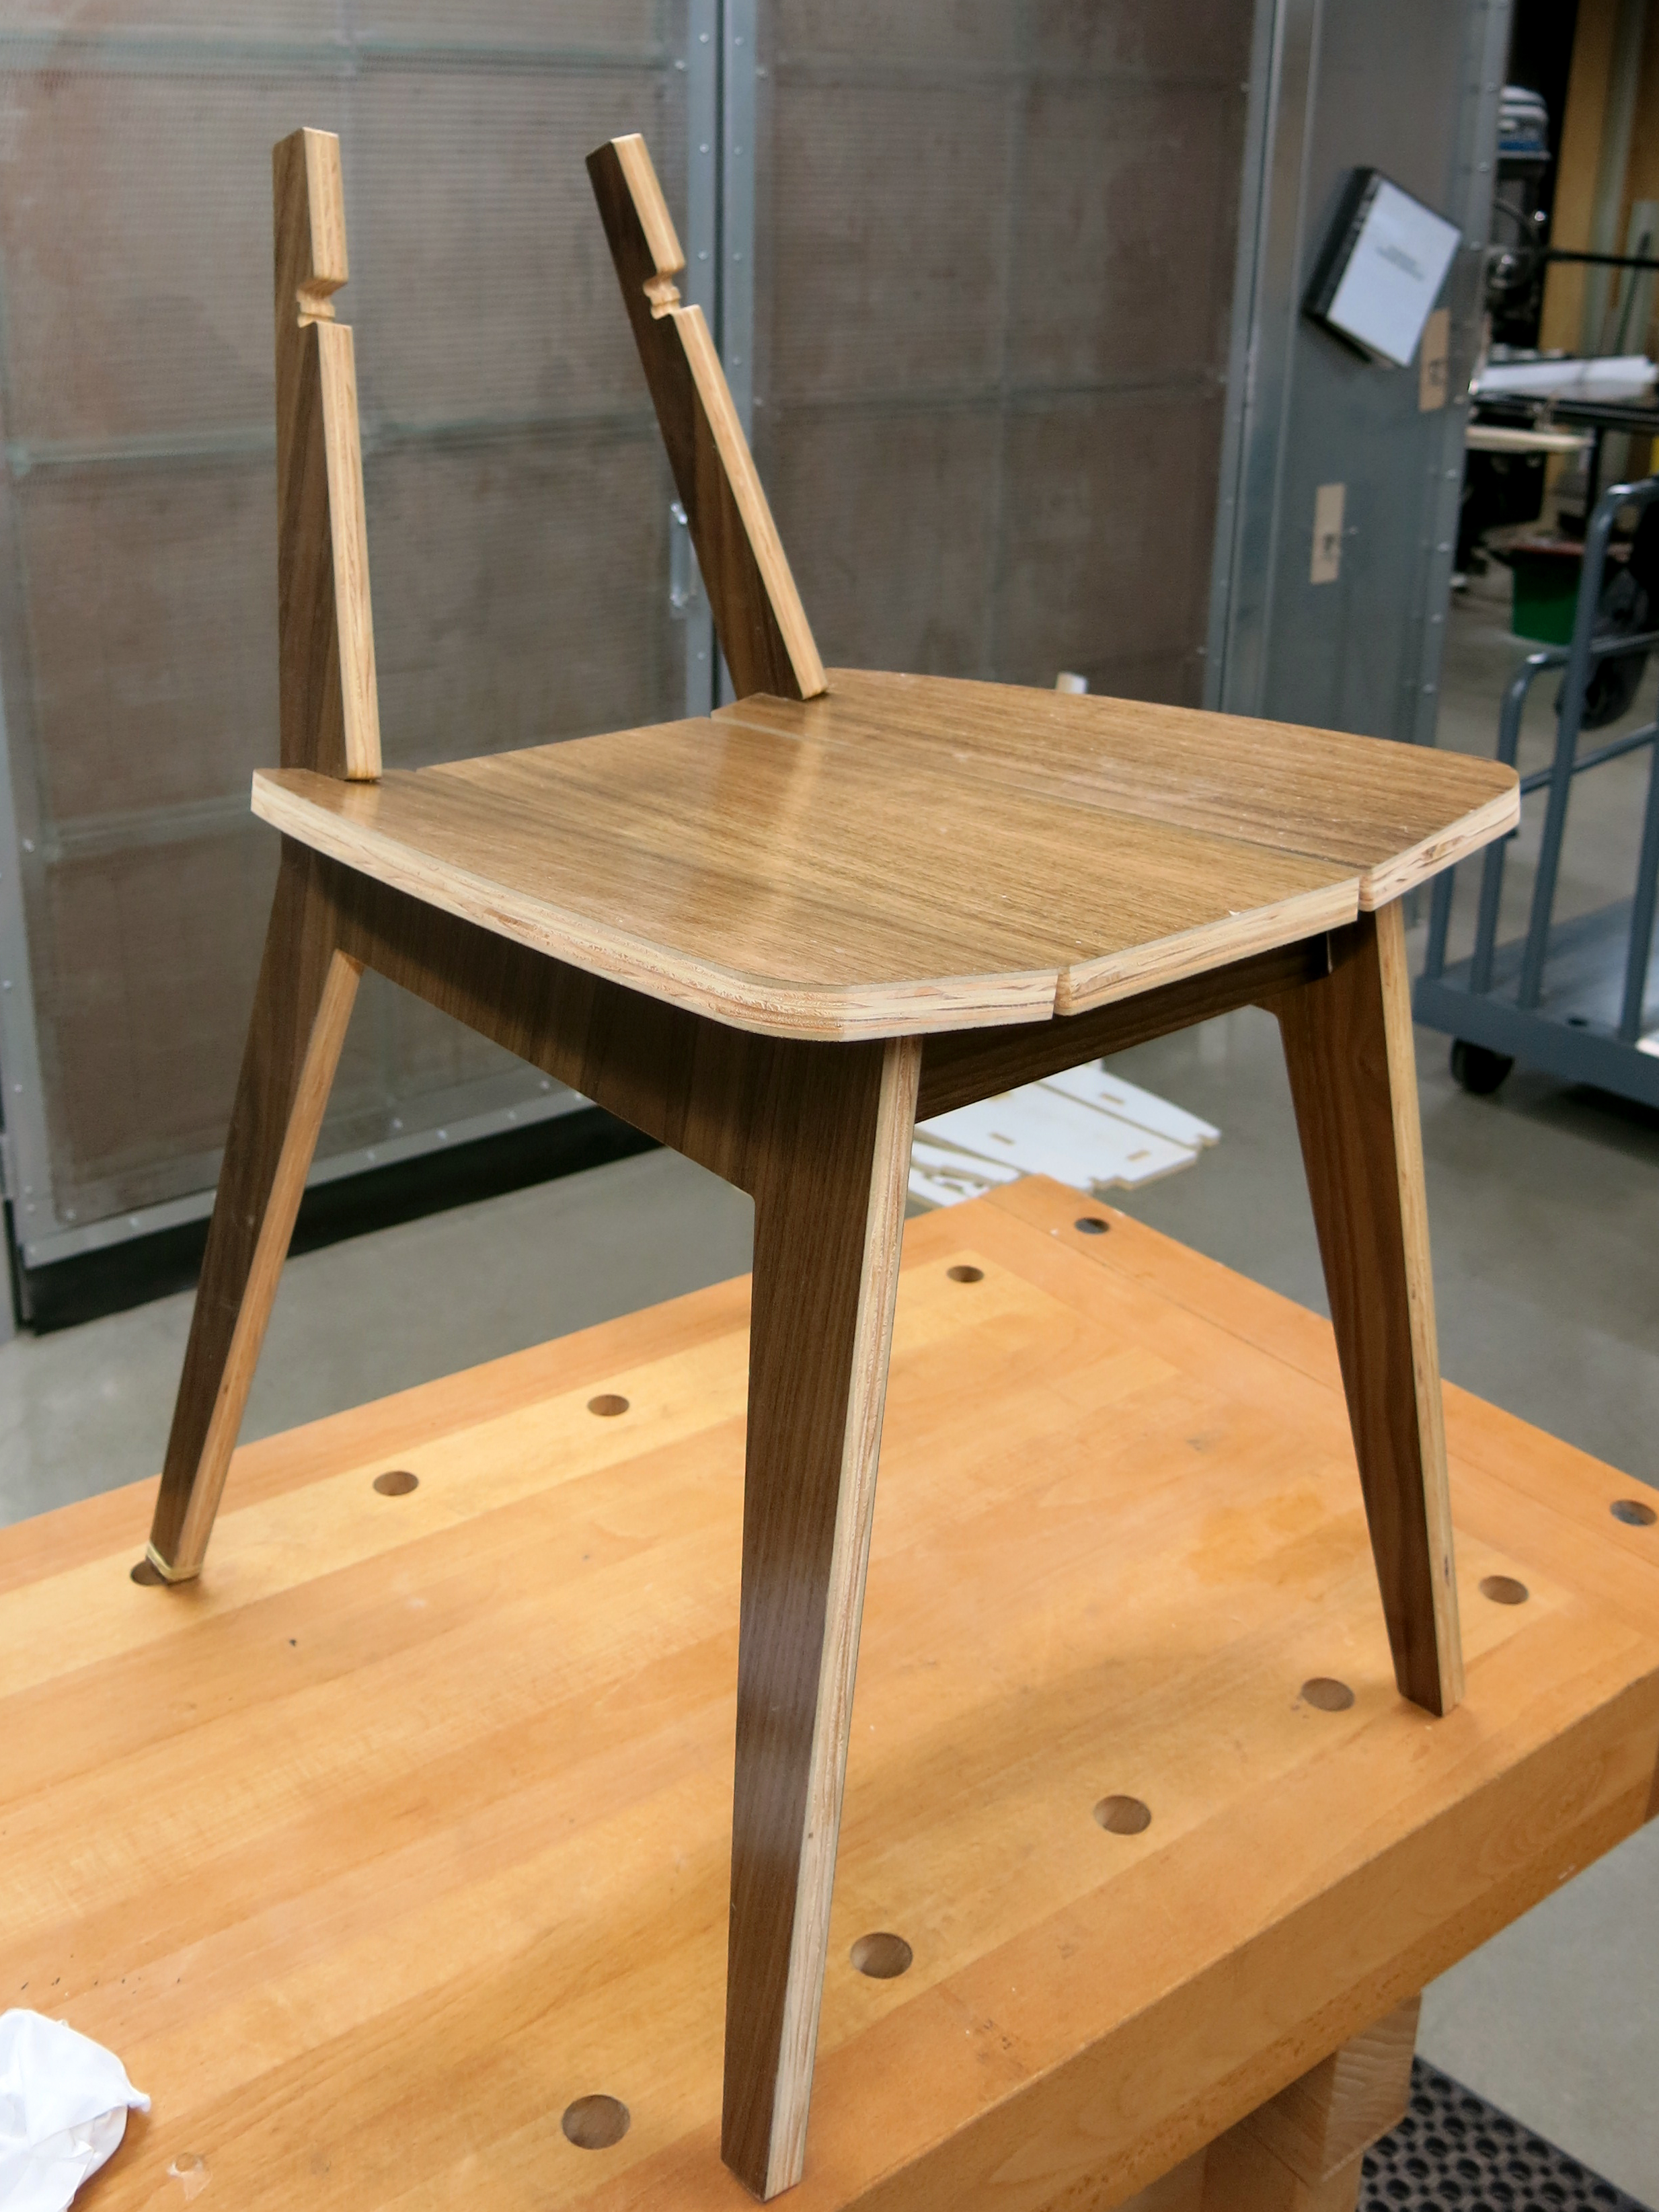 Picture of Assemble Legs to Seat